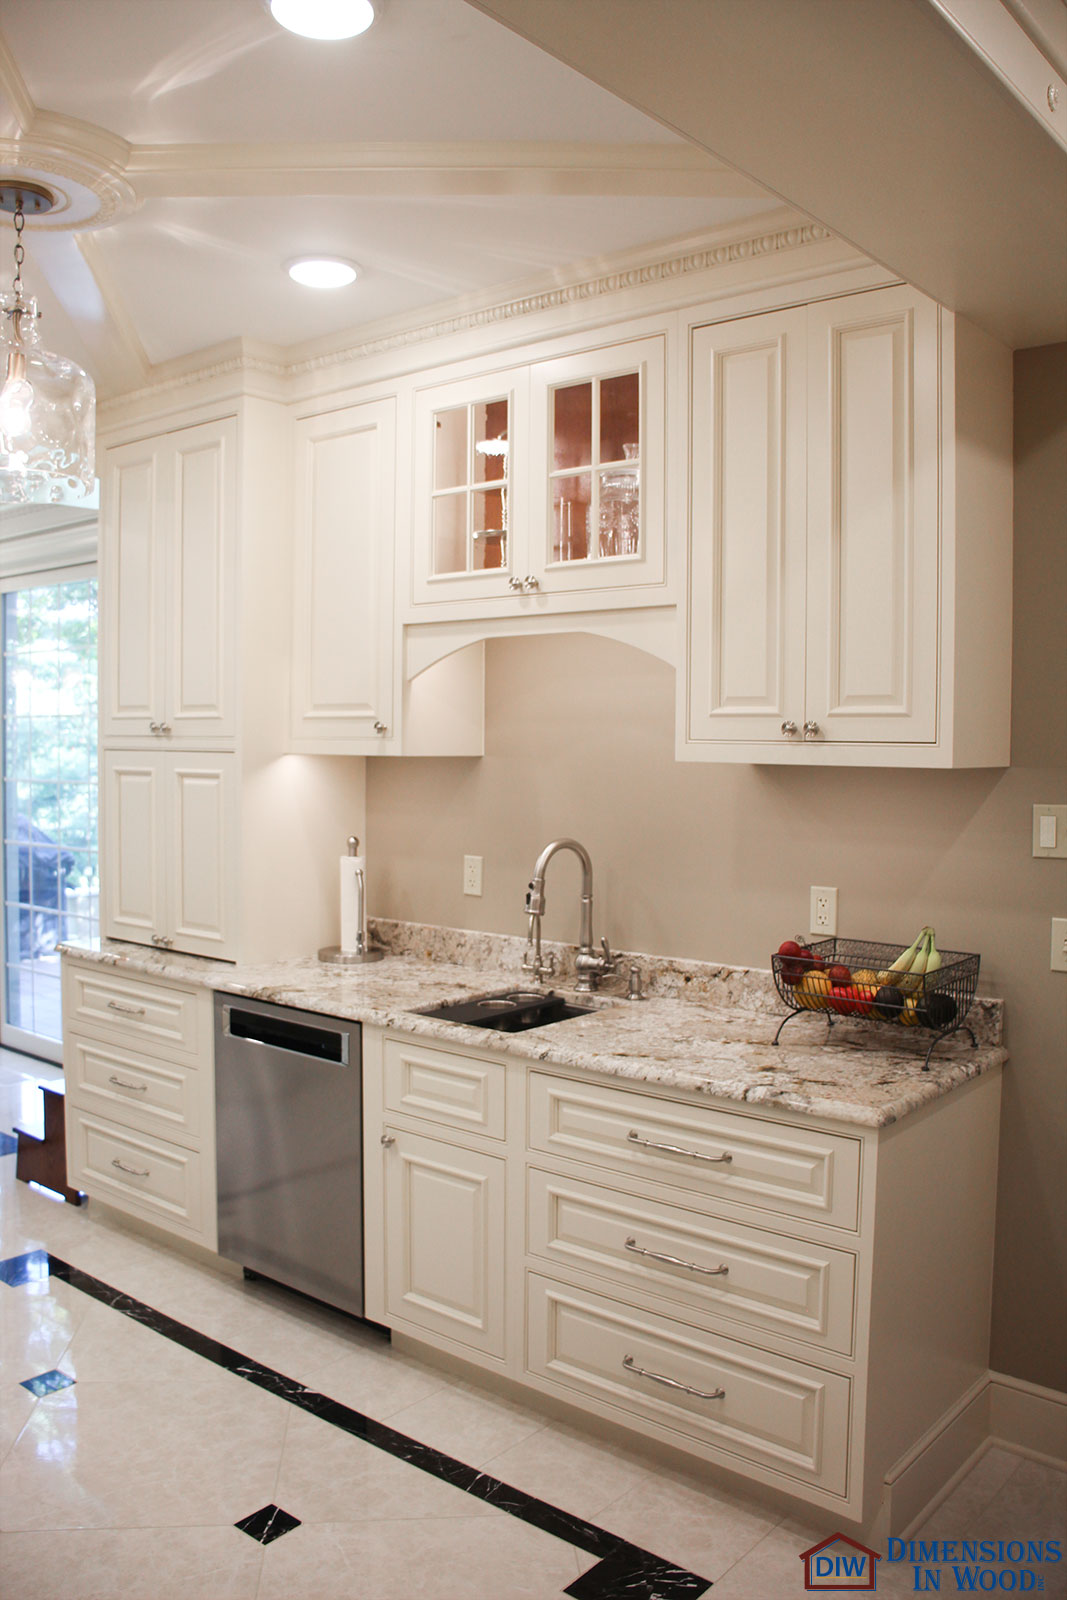 Kitchen Renovation With Baking Cabinet And Snack Bar Alcove Columbia Mo Dimensions In Wood